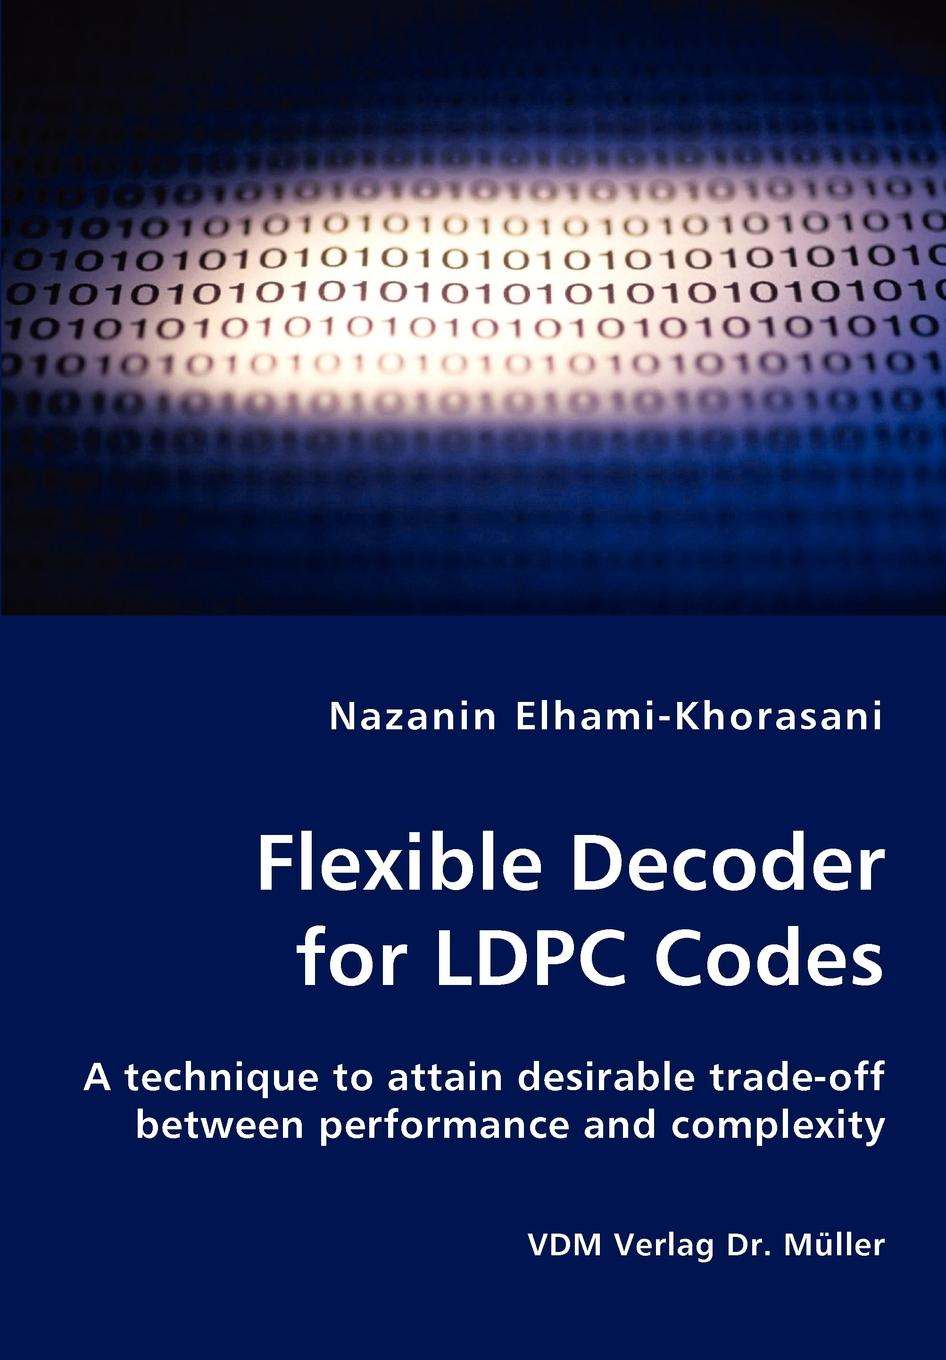 Nazanin Elhami-Khorasani Flexible Decoder for LDPC Codes - A technique to attain desirable trade-off between performance and complexity kinsella sophie a desirable residence